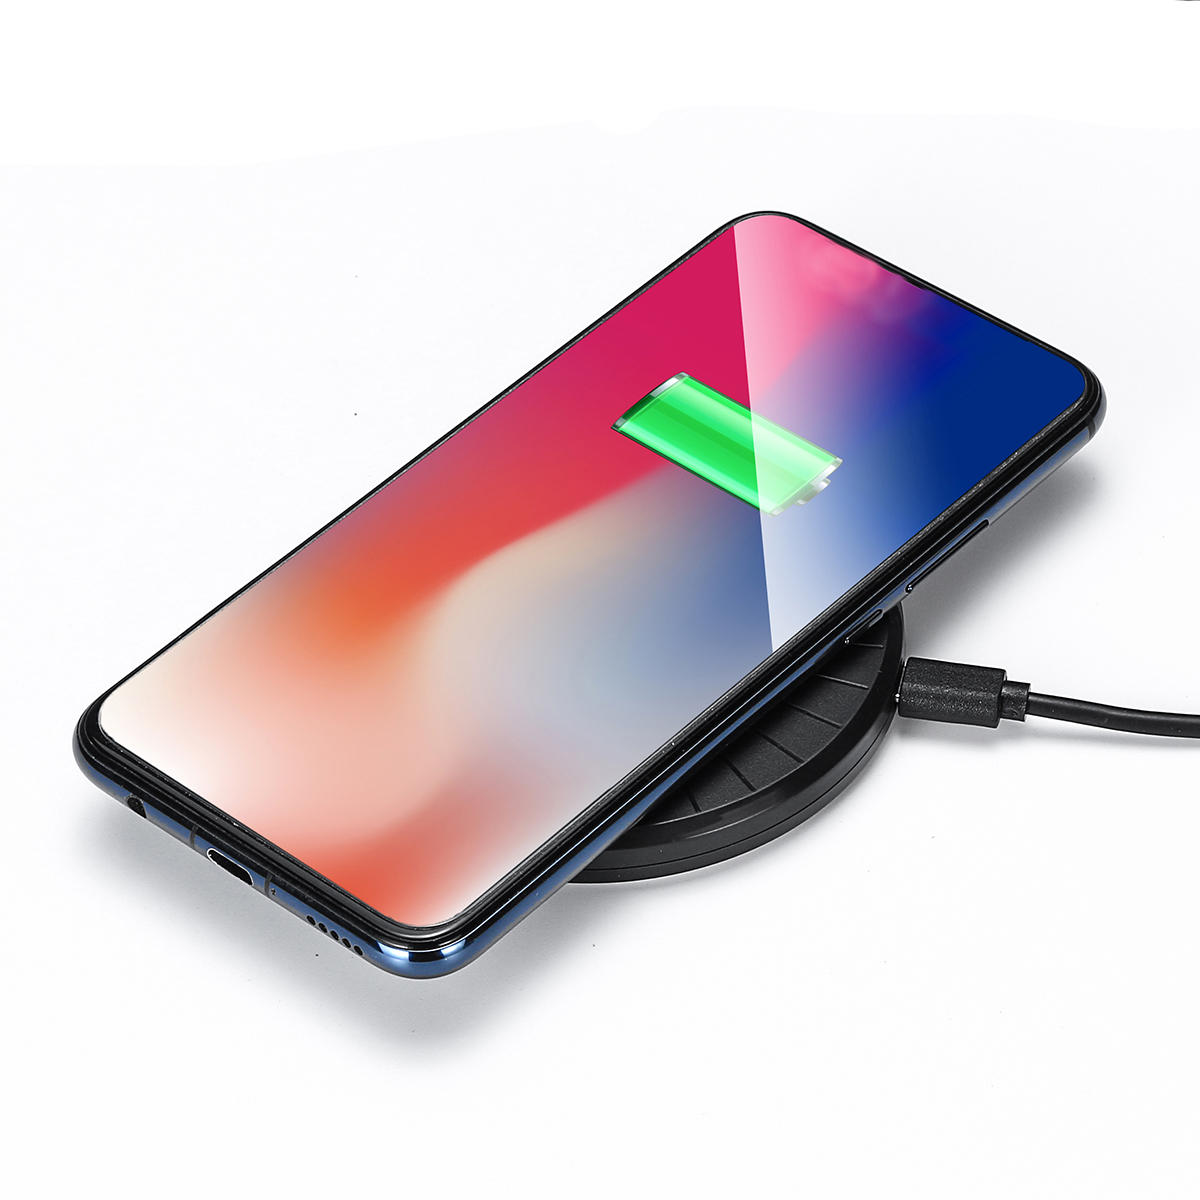 Bakeey 10W Wireless QI Fast Charger Charging Dock Stand Holder Universal For Samsung Galaxy Note 9 S8 S9 S10 Plus For iP